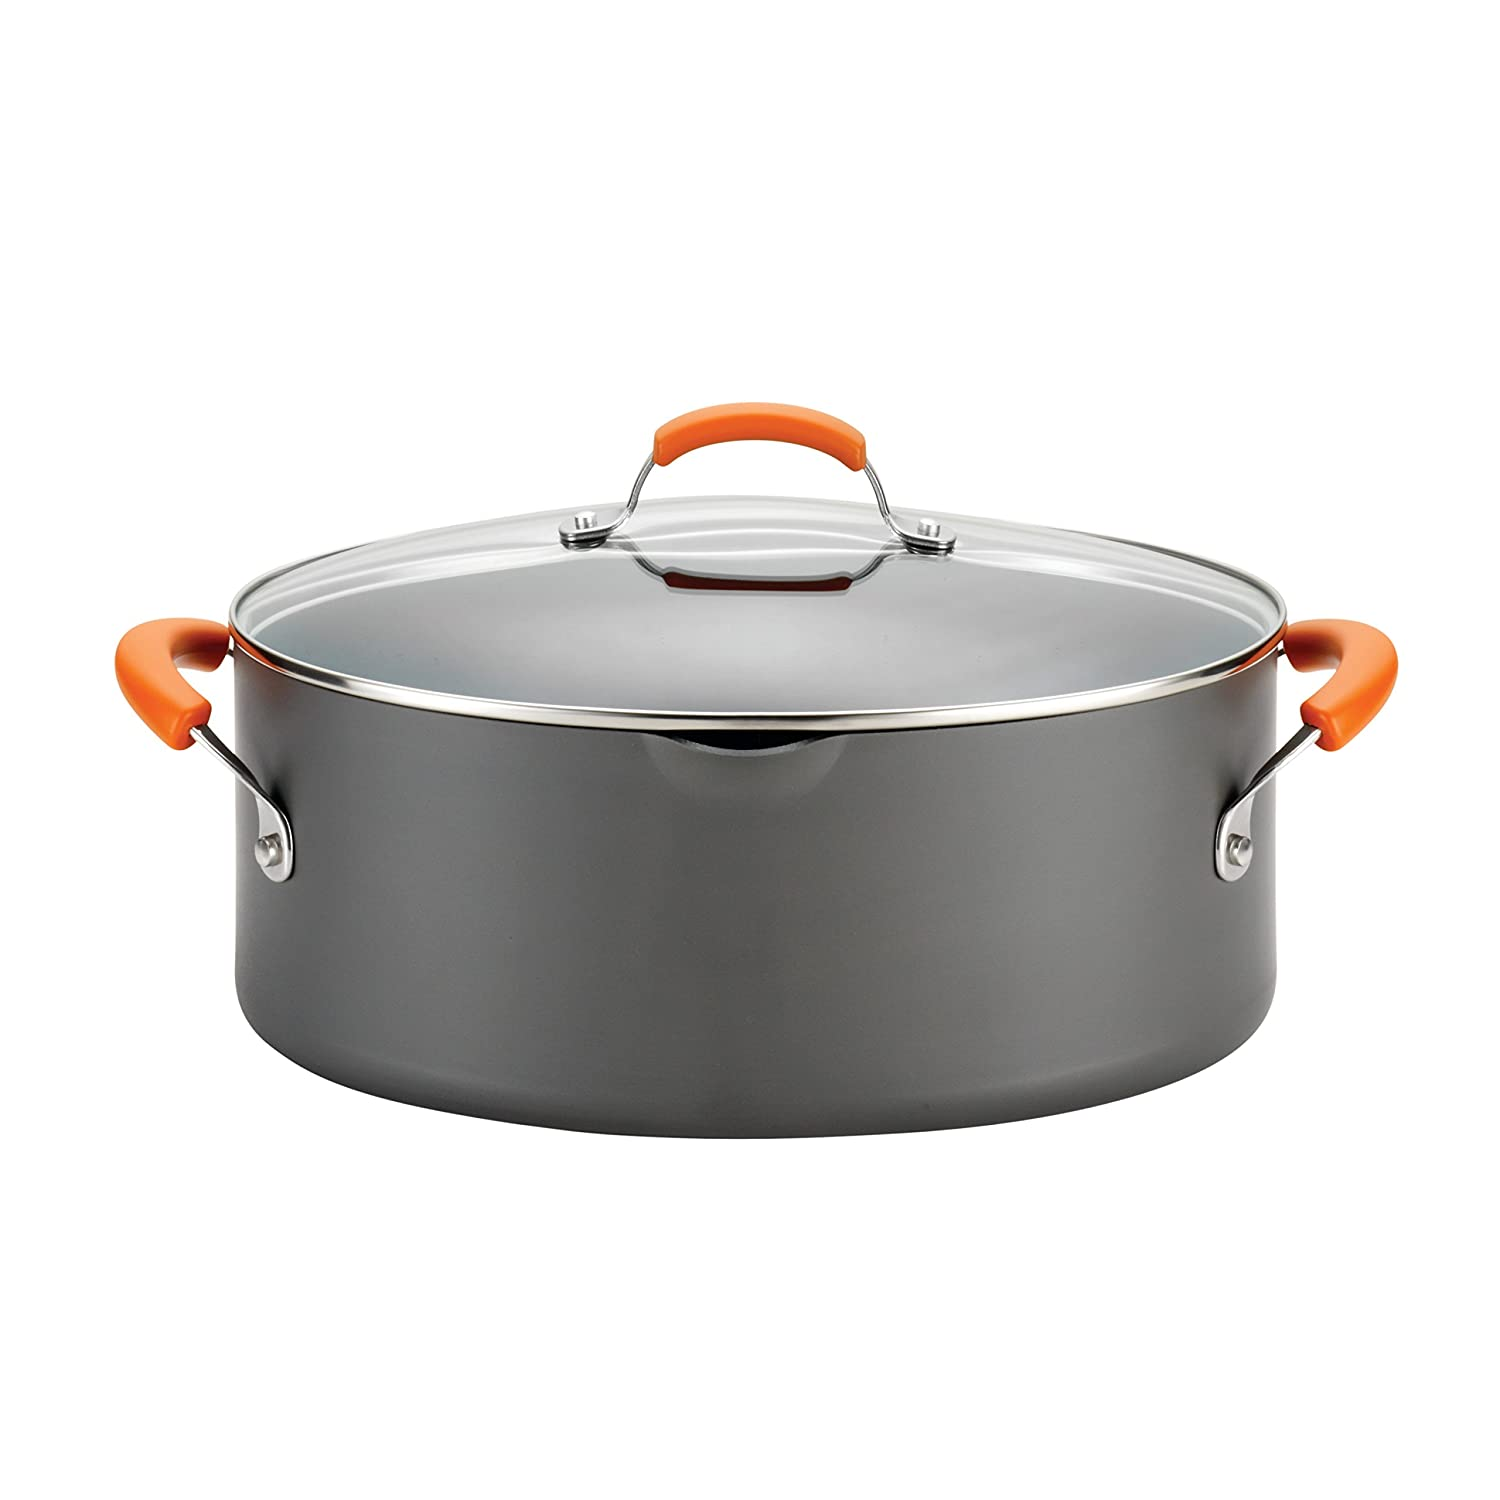 Rachael Ray Hard-AnodizedNonstick 8-Quart Covered Oval Pasta Pot with Pour Spout, Gray with Orange Handles